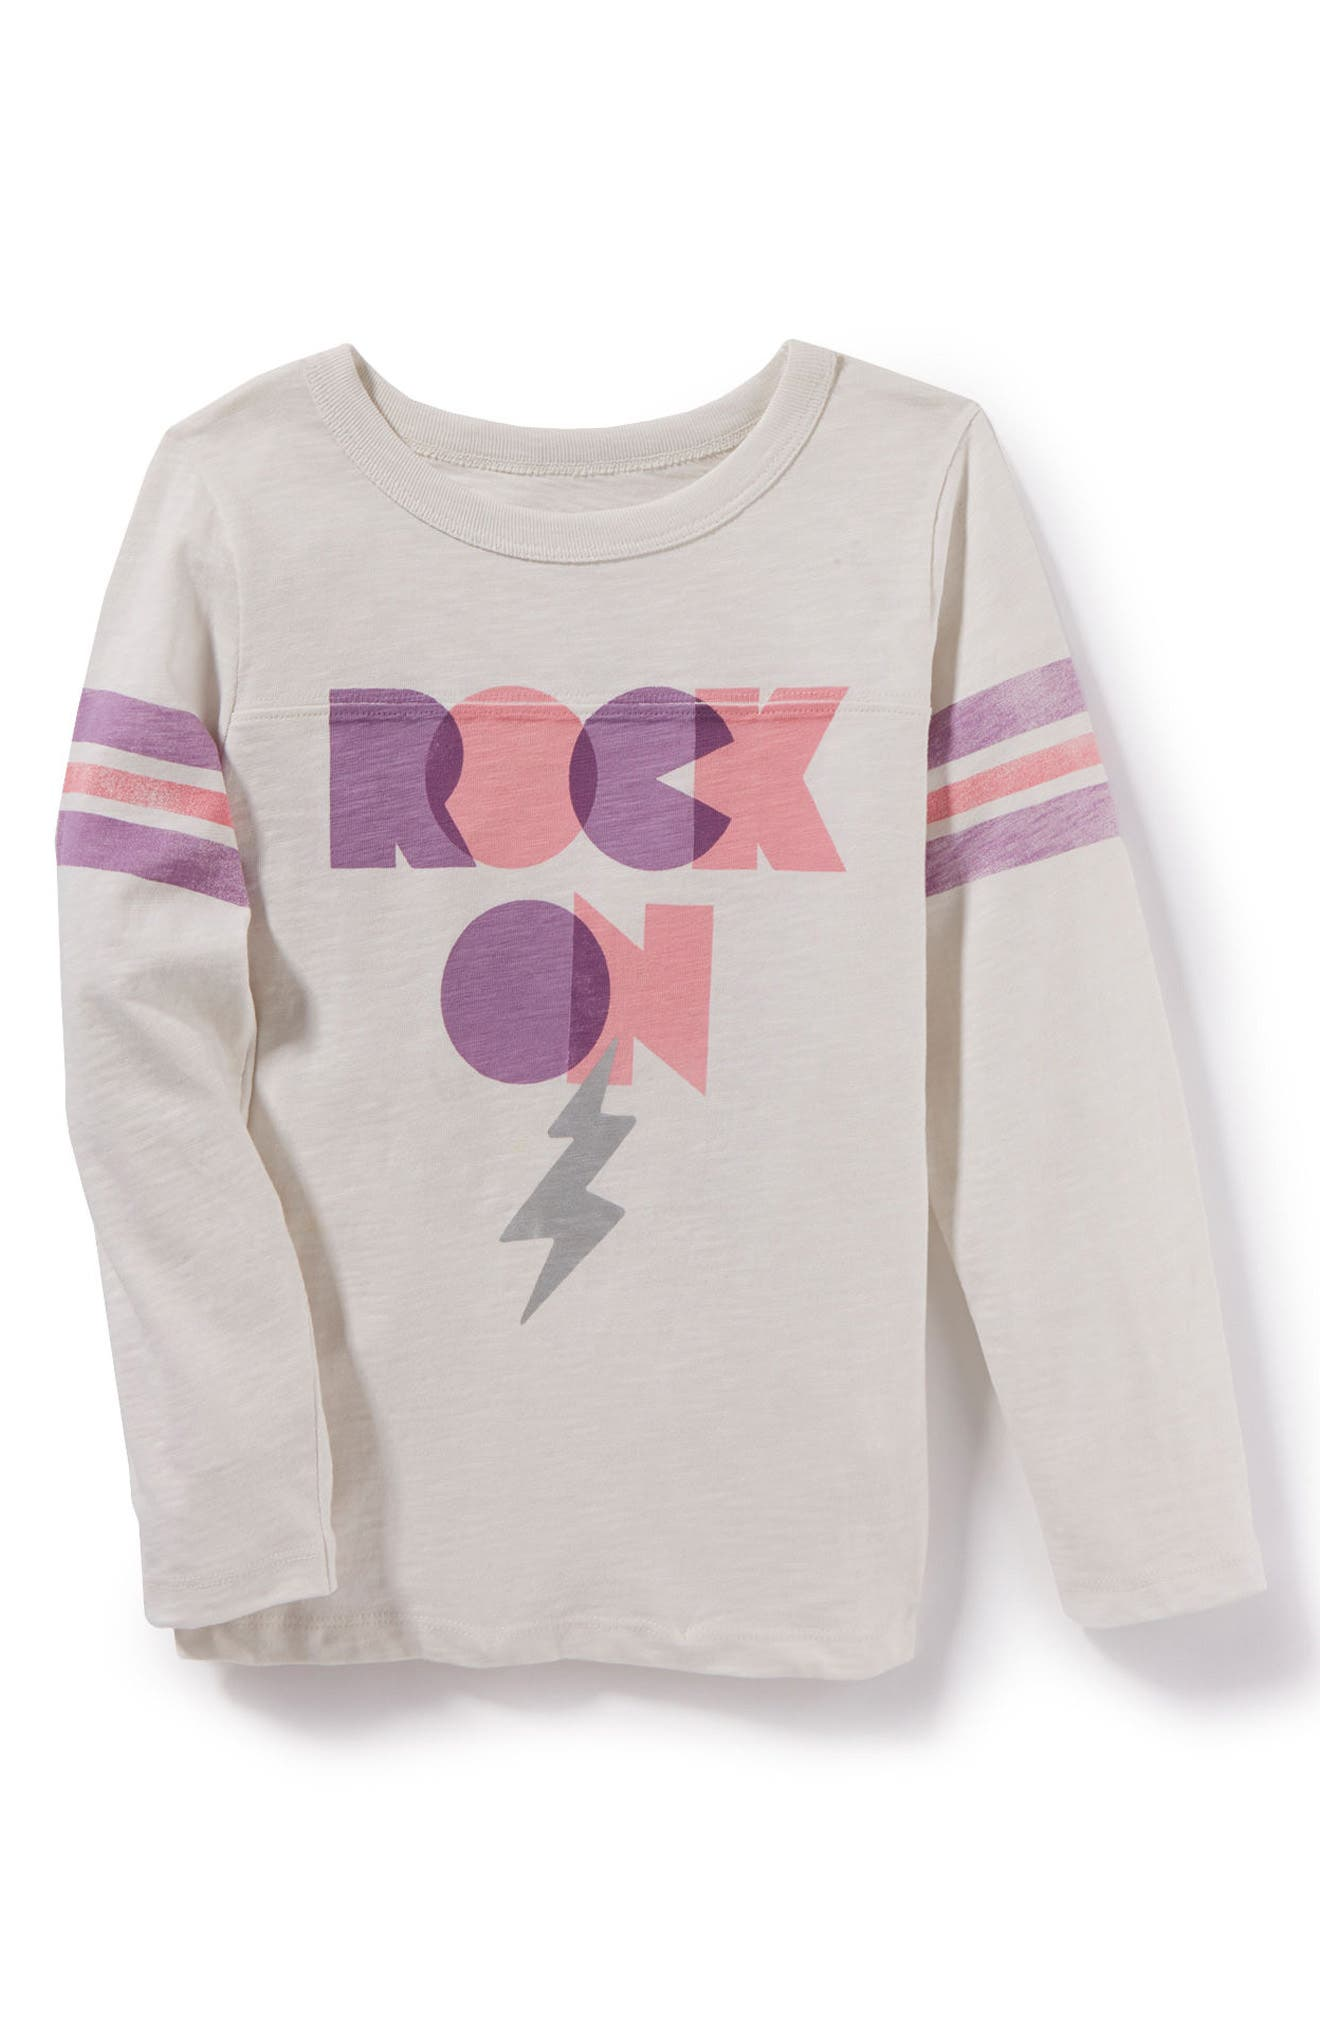 Rock On Graphic Tee,                         Main,                         color, Ivory